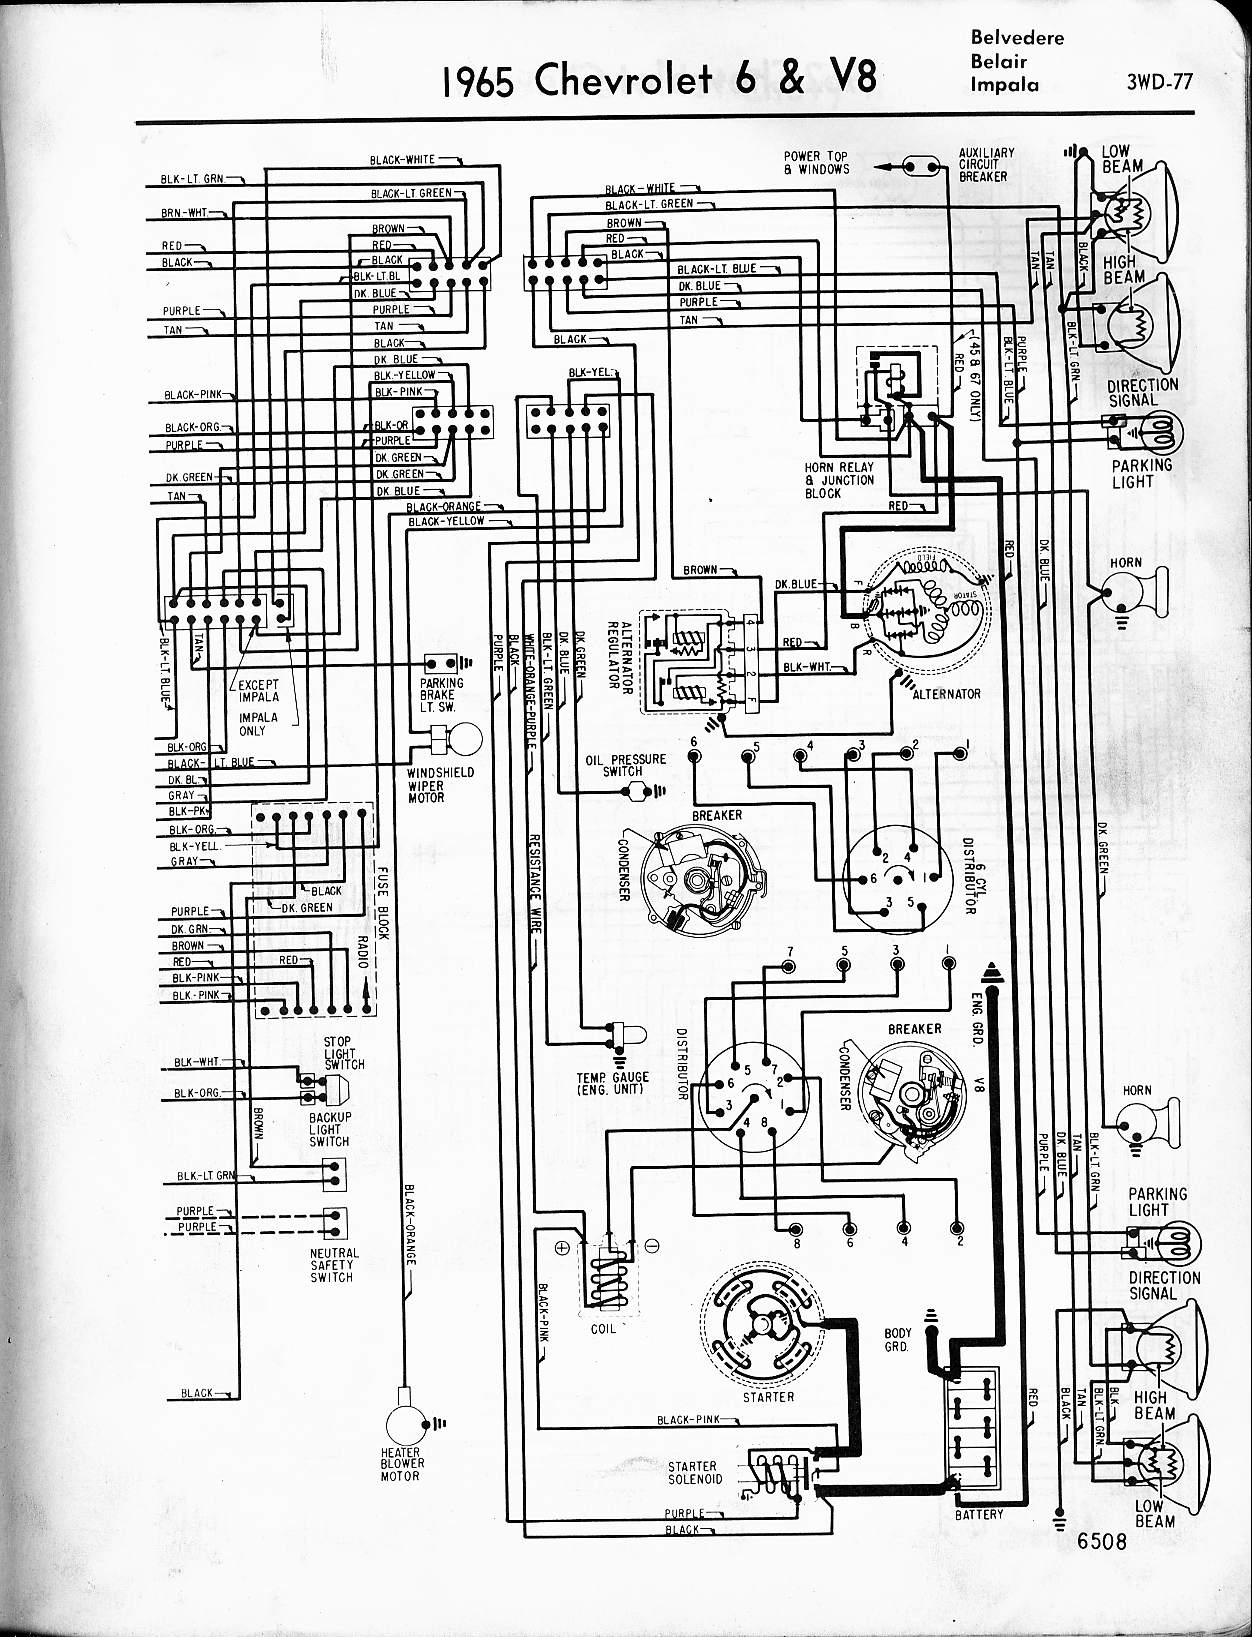 MWireChev65_3WD 077 69 chevelle wiring diagram 69 chevelle engine wiring diagram 1969 chevelle horn relay wiring diagram at honlapkeszites.co